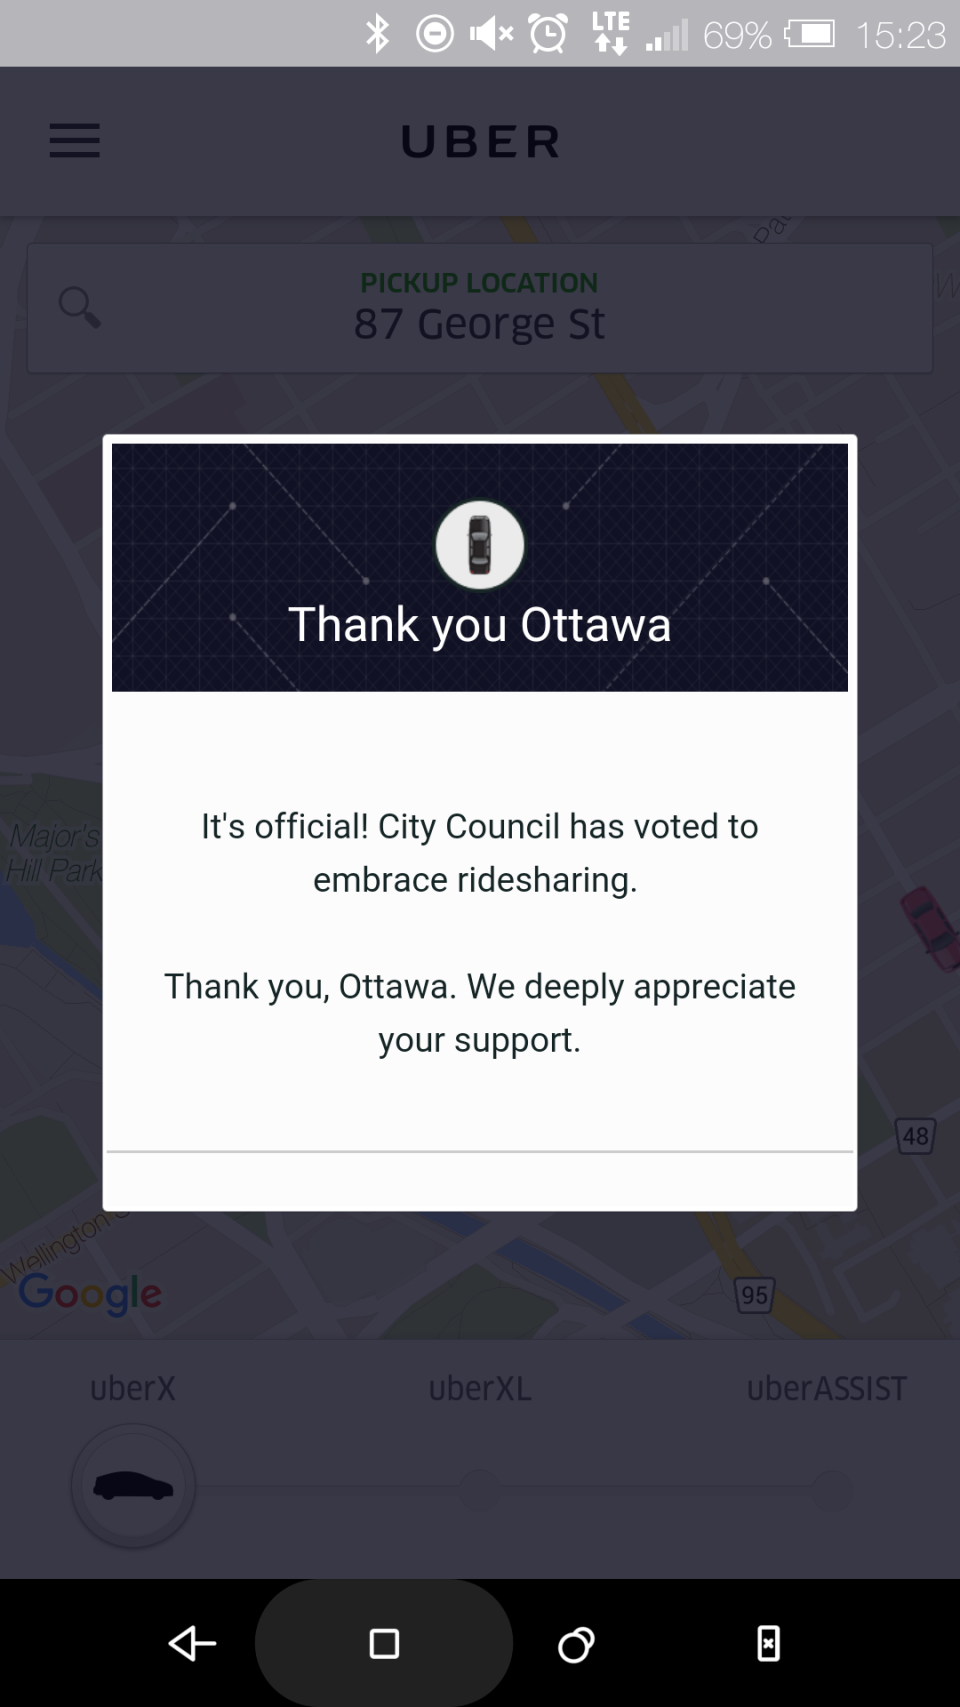 Uber provides an in-app thank you to Ottawa after City Council's decision to legalize the ridesharing service in September.